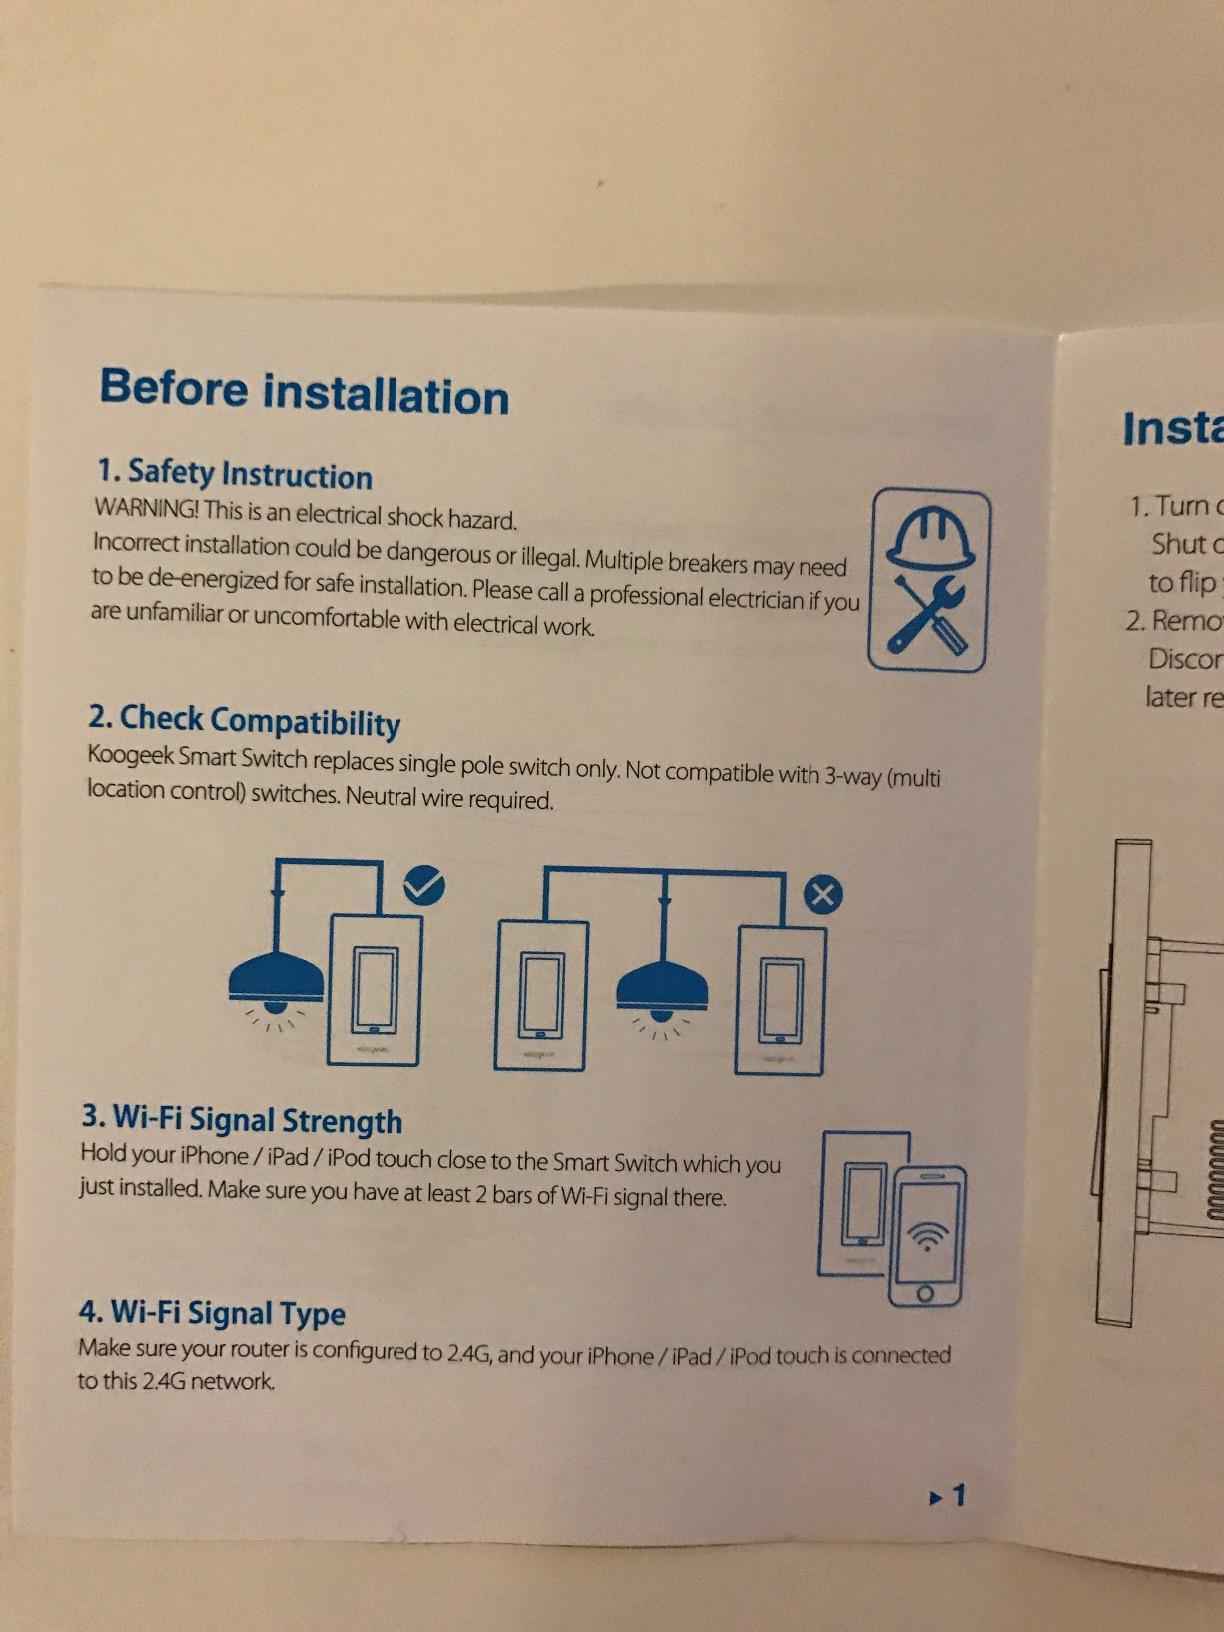 Koogeek Two Gang Wi Fi Enabled Smart Light Switch Works With Apple Xm 3000 Electric Scooter Wiring Diagram Gotta Get My Tv Configured Too That Will Be Next I Would Like To See This Work Remotely 5 Stars And Really Happy Decided Make The